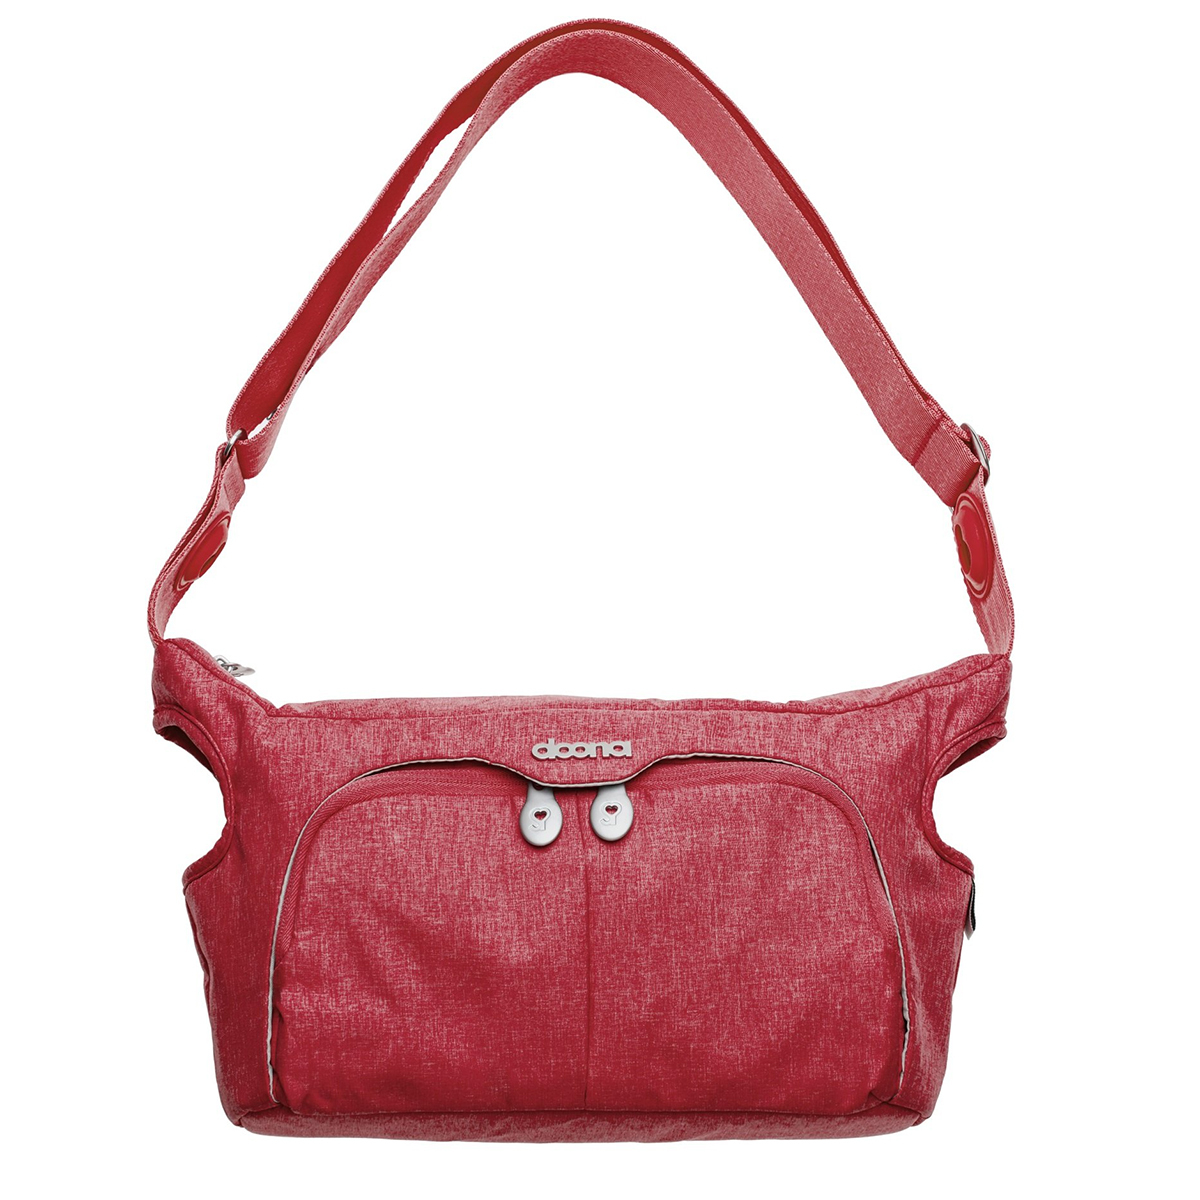 Sac à langer Sac à Langer Essential Bag - Rouge Sac à Langer Essential Bag - Rouge